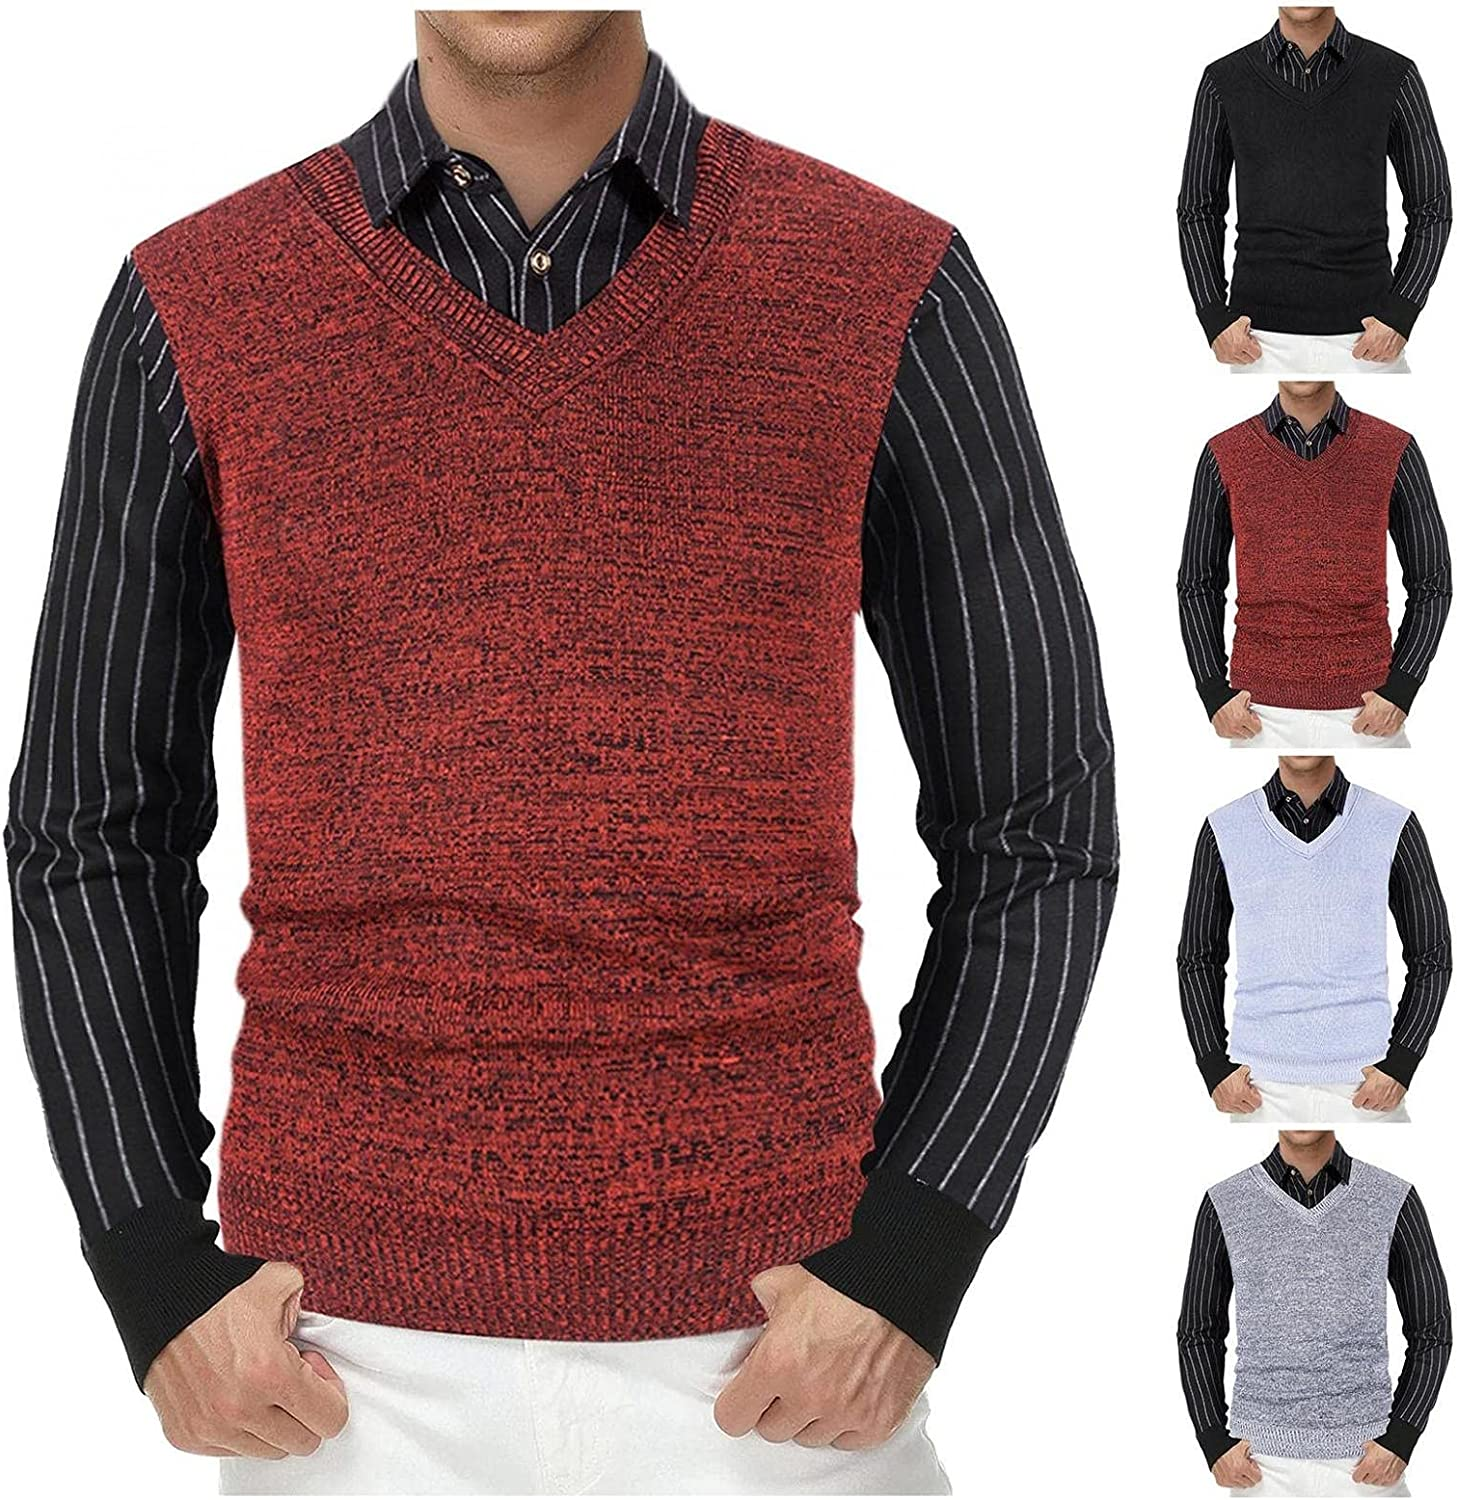 Men's Knitted Sweaters Casual Business Fake Two-Piece Shirts Casual Slim Fit V-Neck Pullover Sweatshirts Business Tops